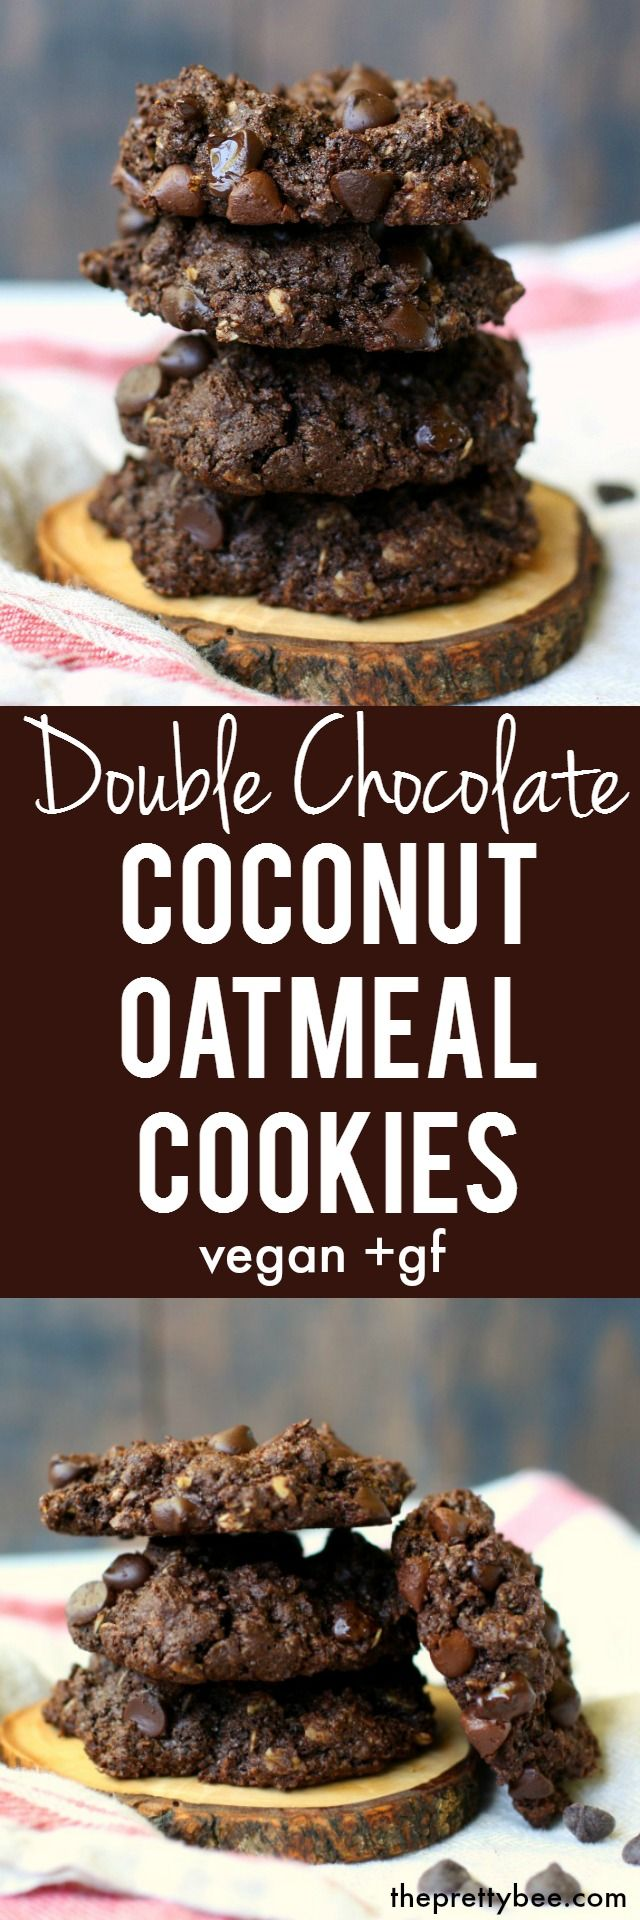 These double chocolate coconut oatmeal cookies are gluten free and vegan, and are delicious!